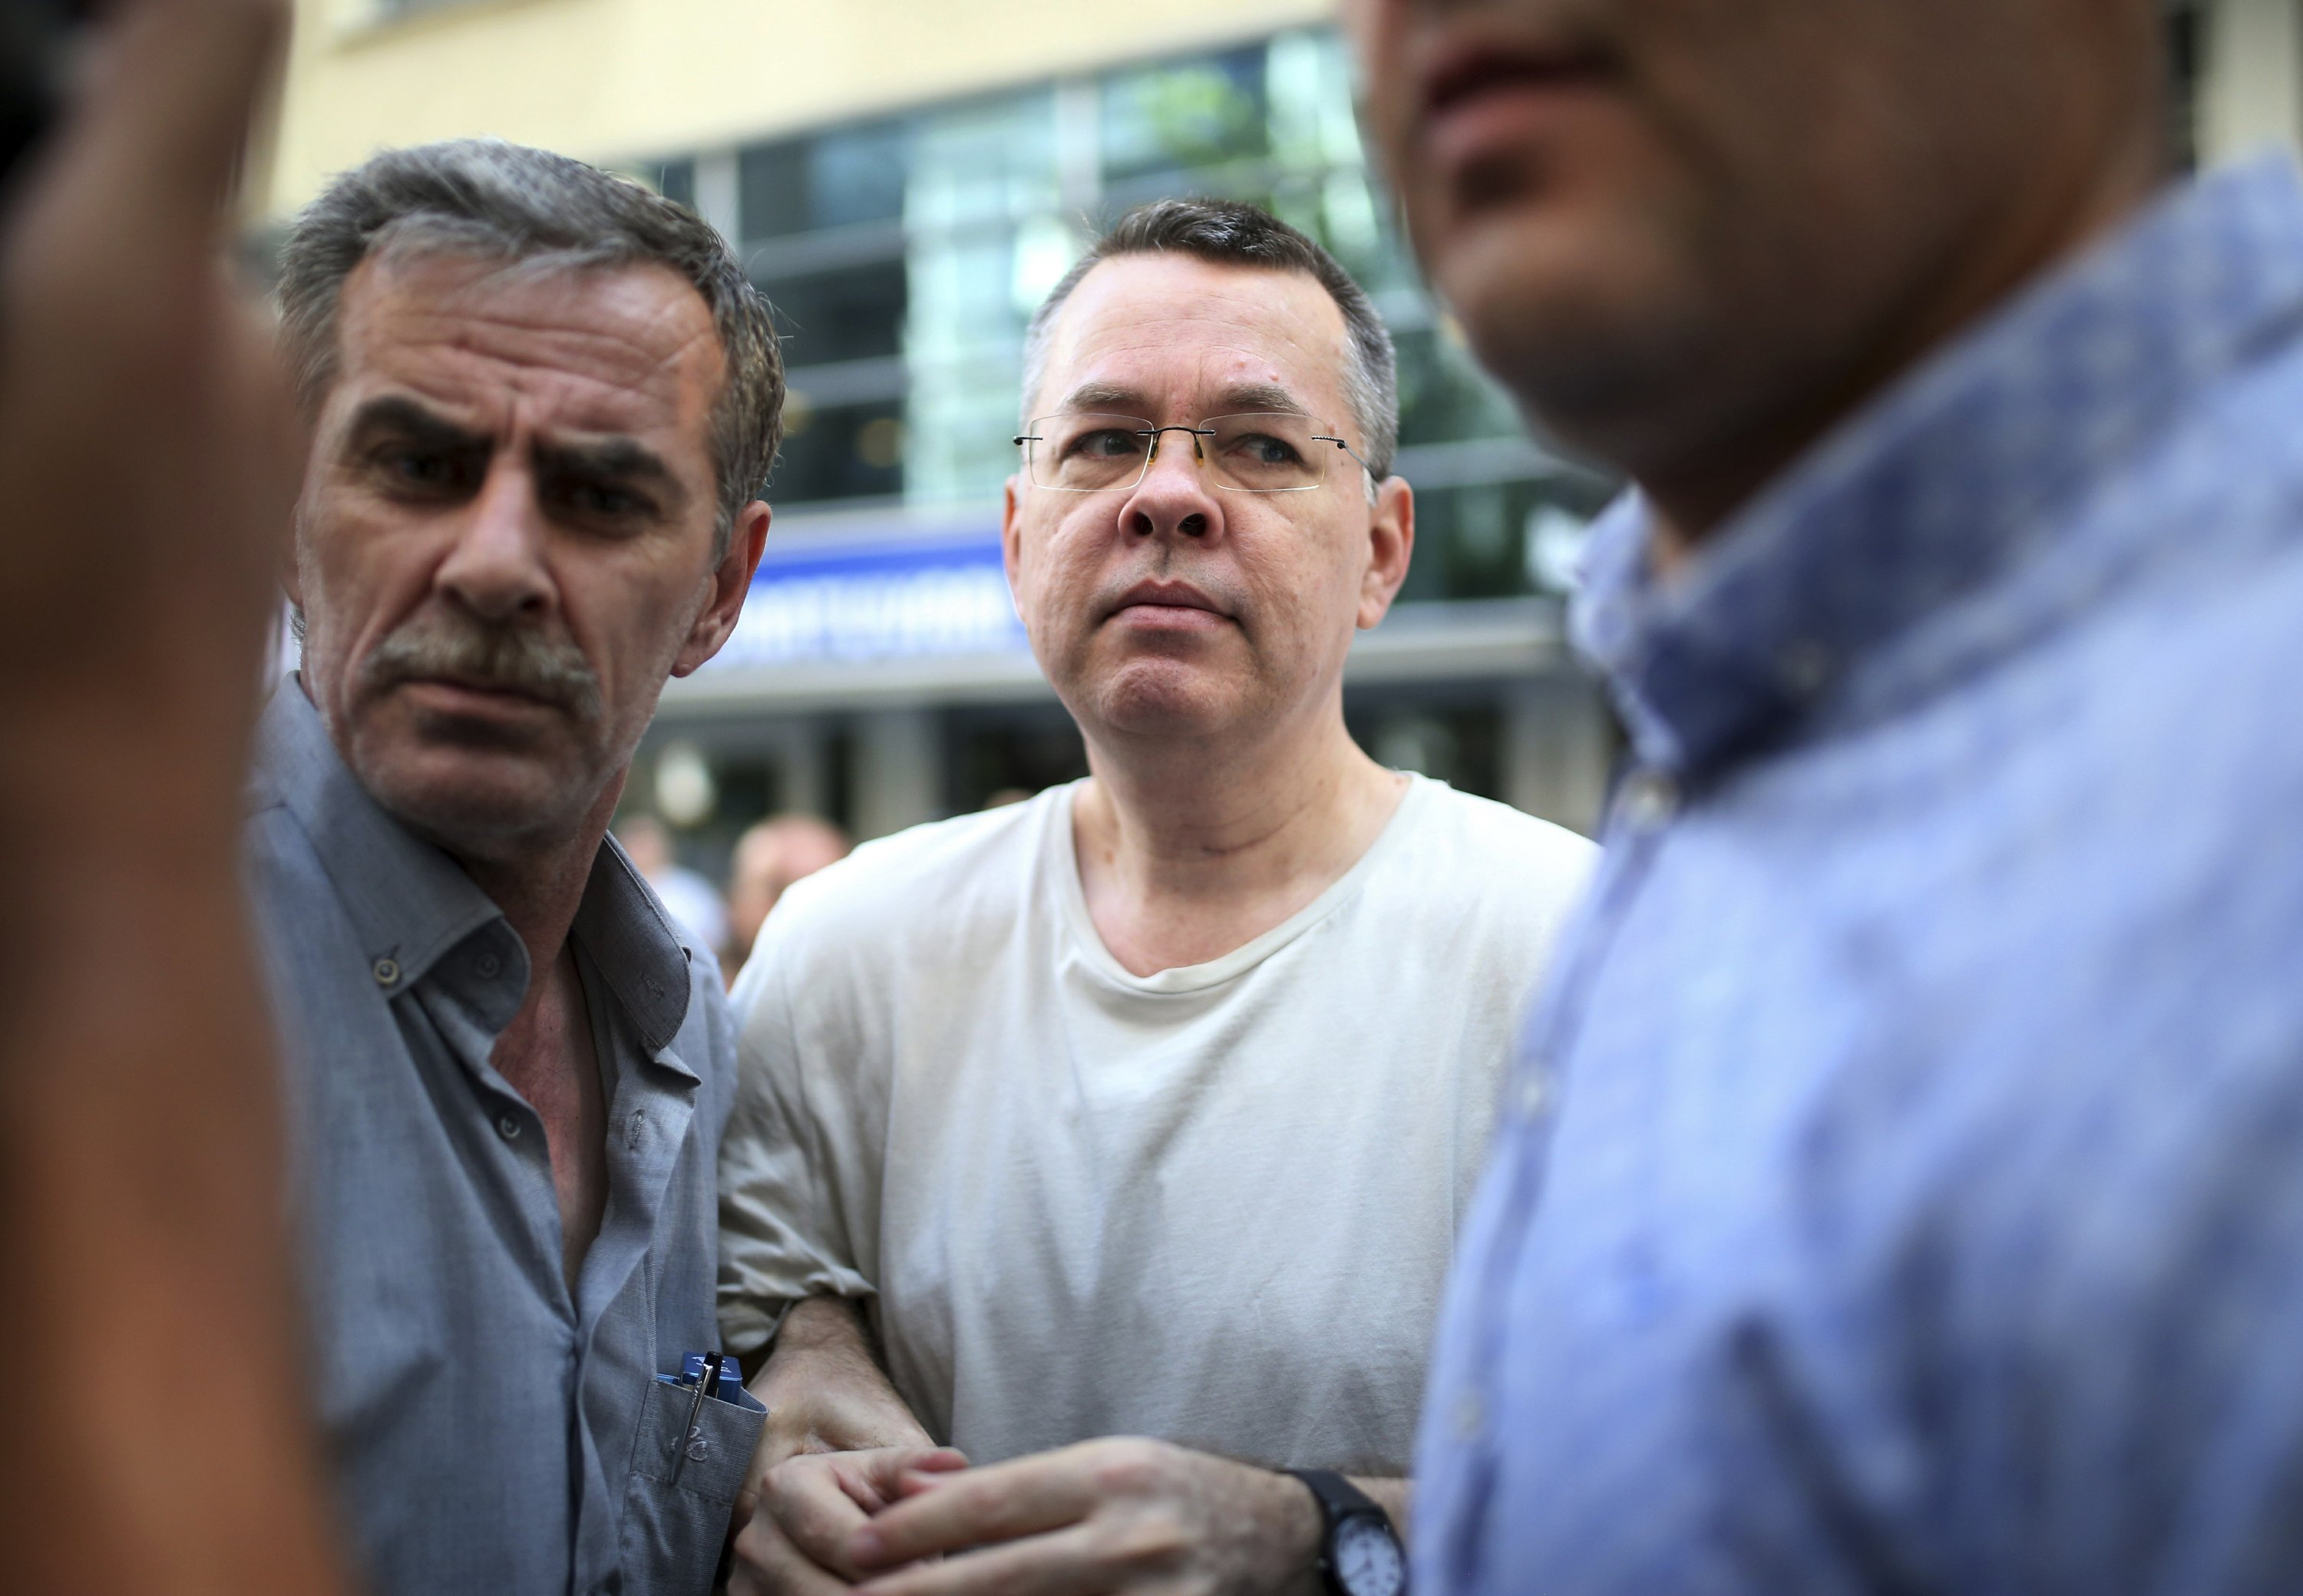 US slaps sanctions over charged pastor; Turkey vows reprisal